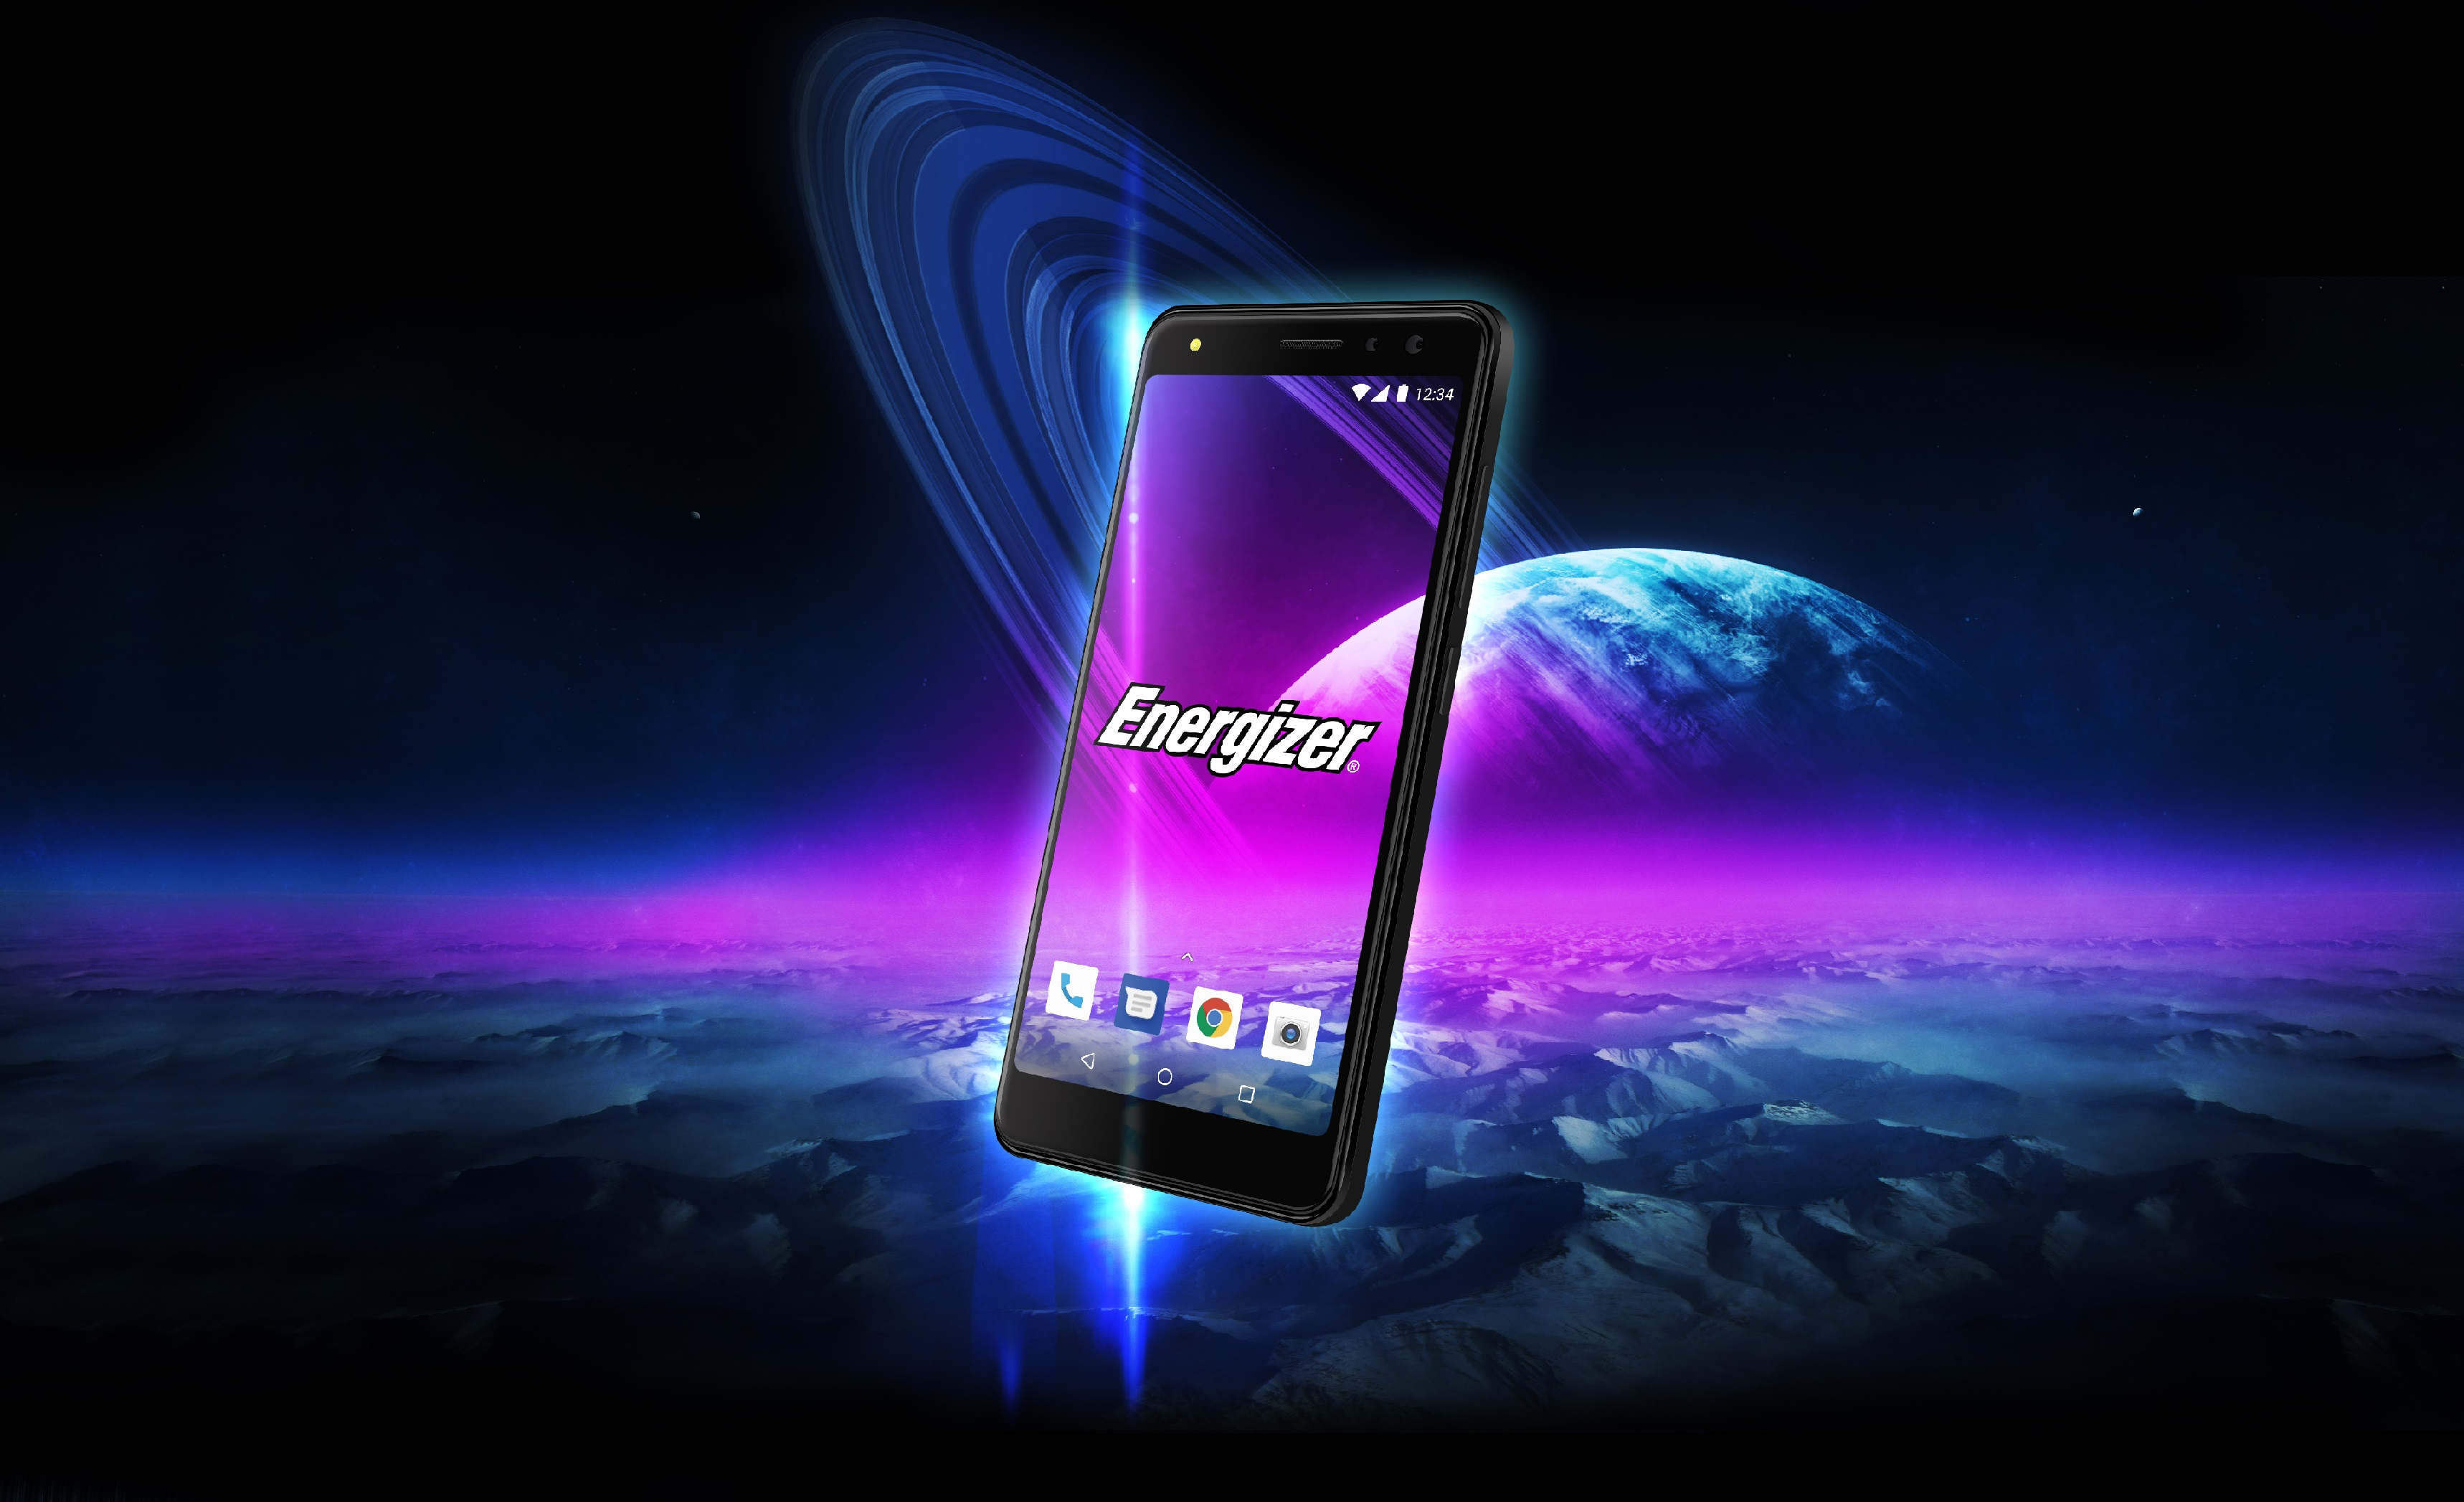 Energizer foldable phone